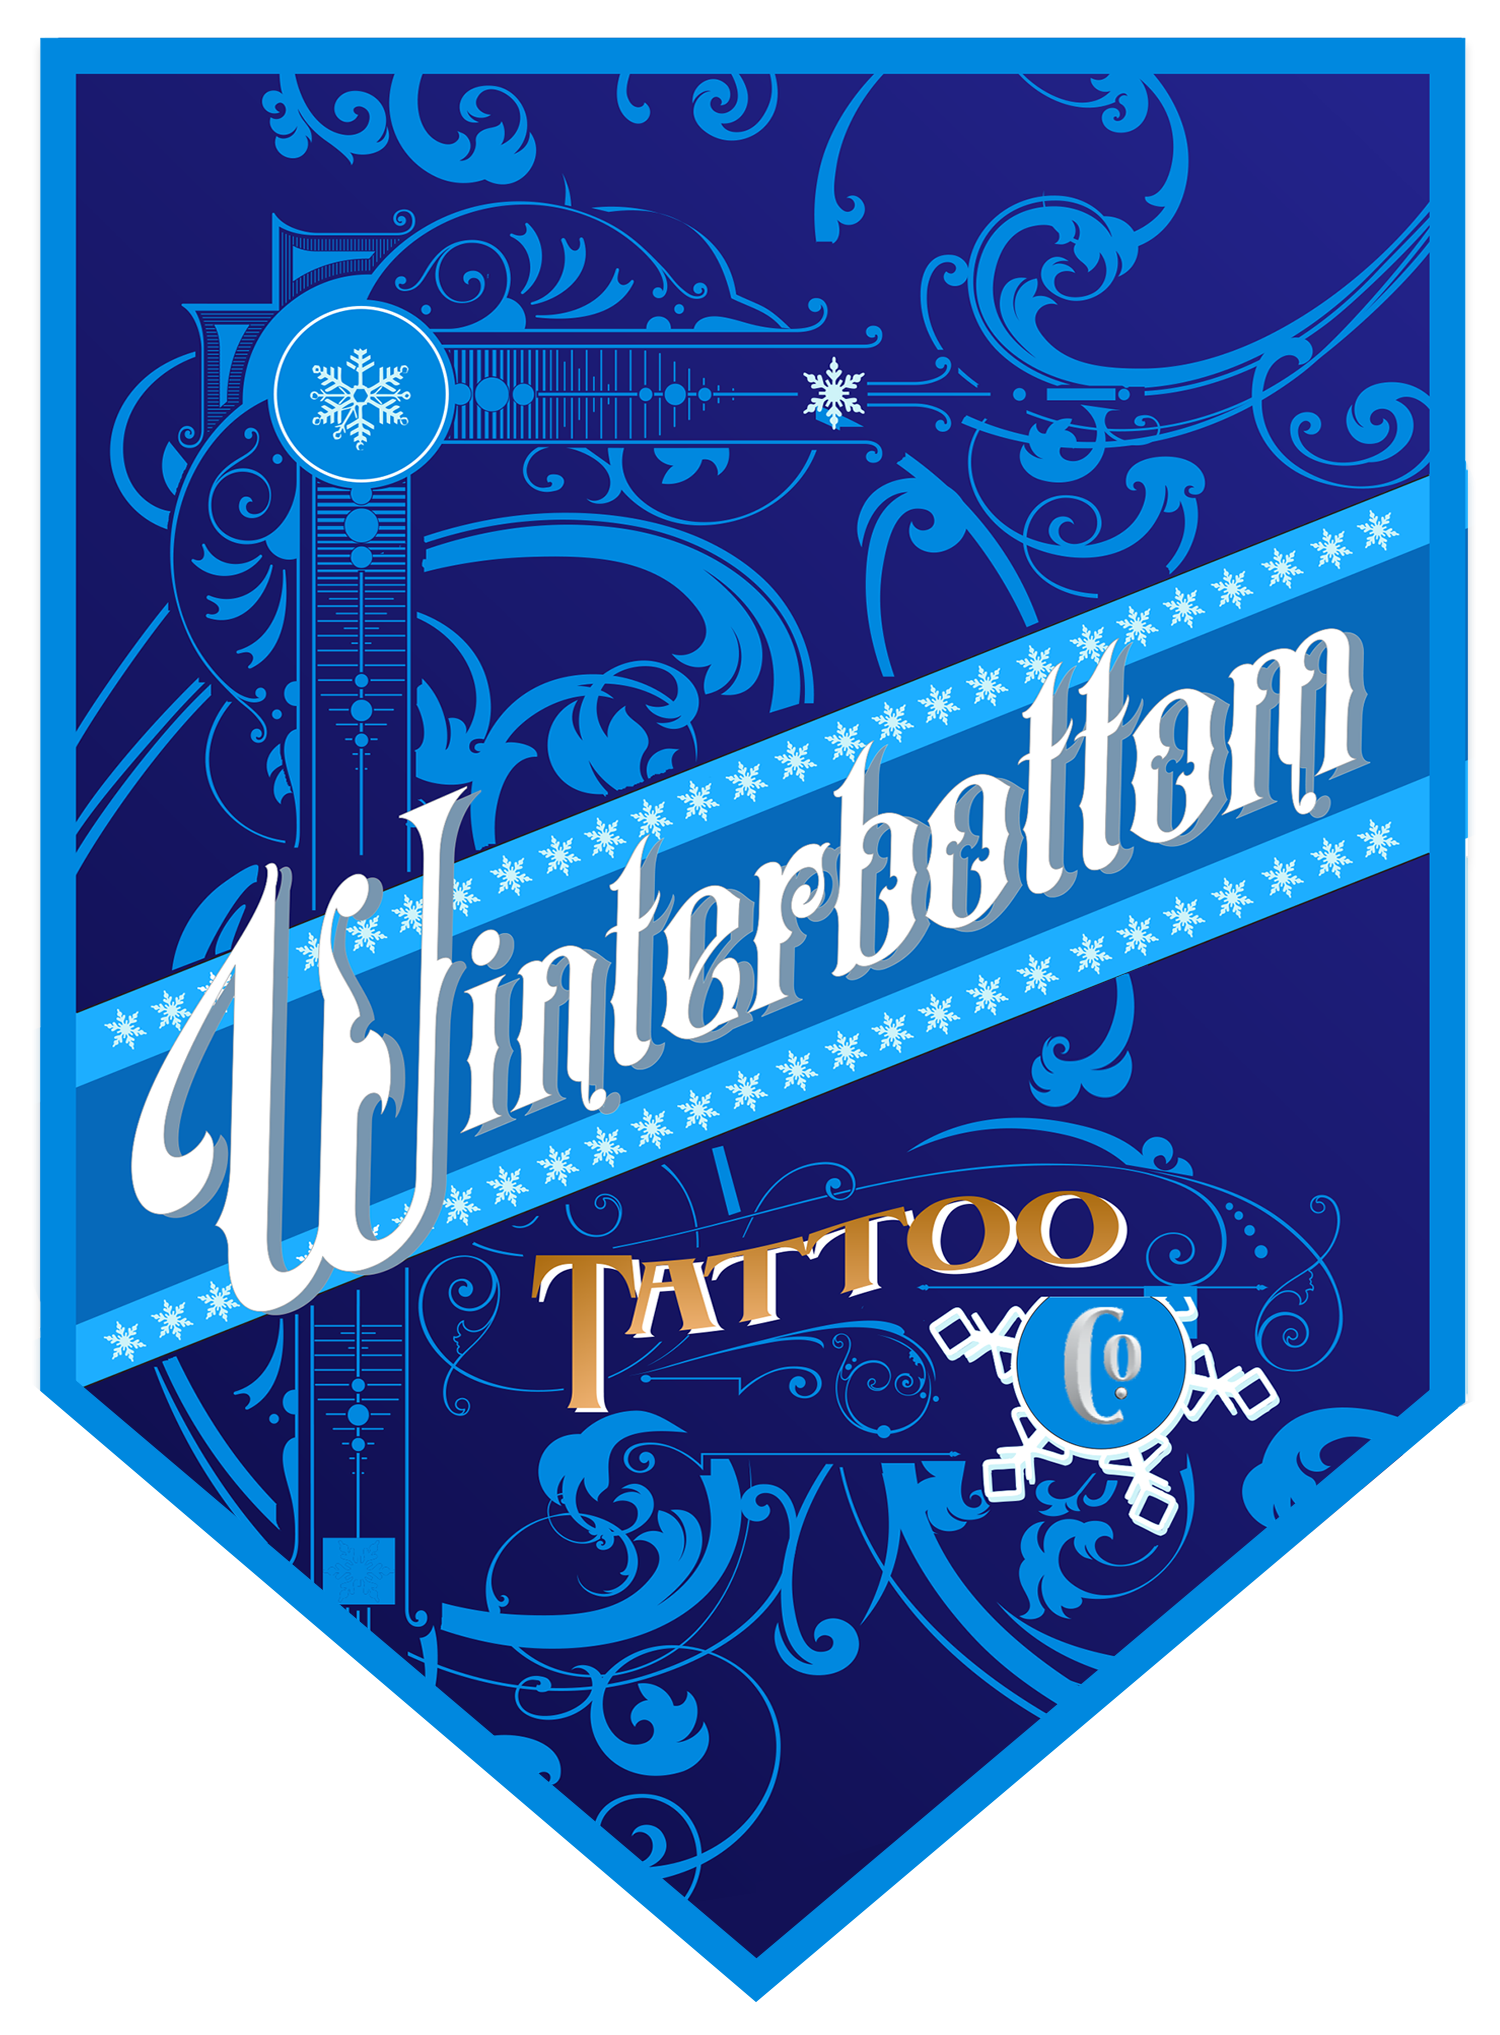 Winterbottom Tattoo Co.